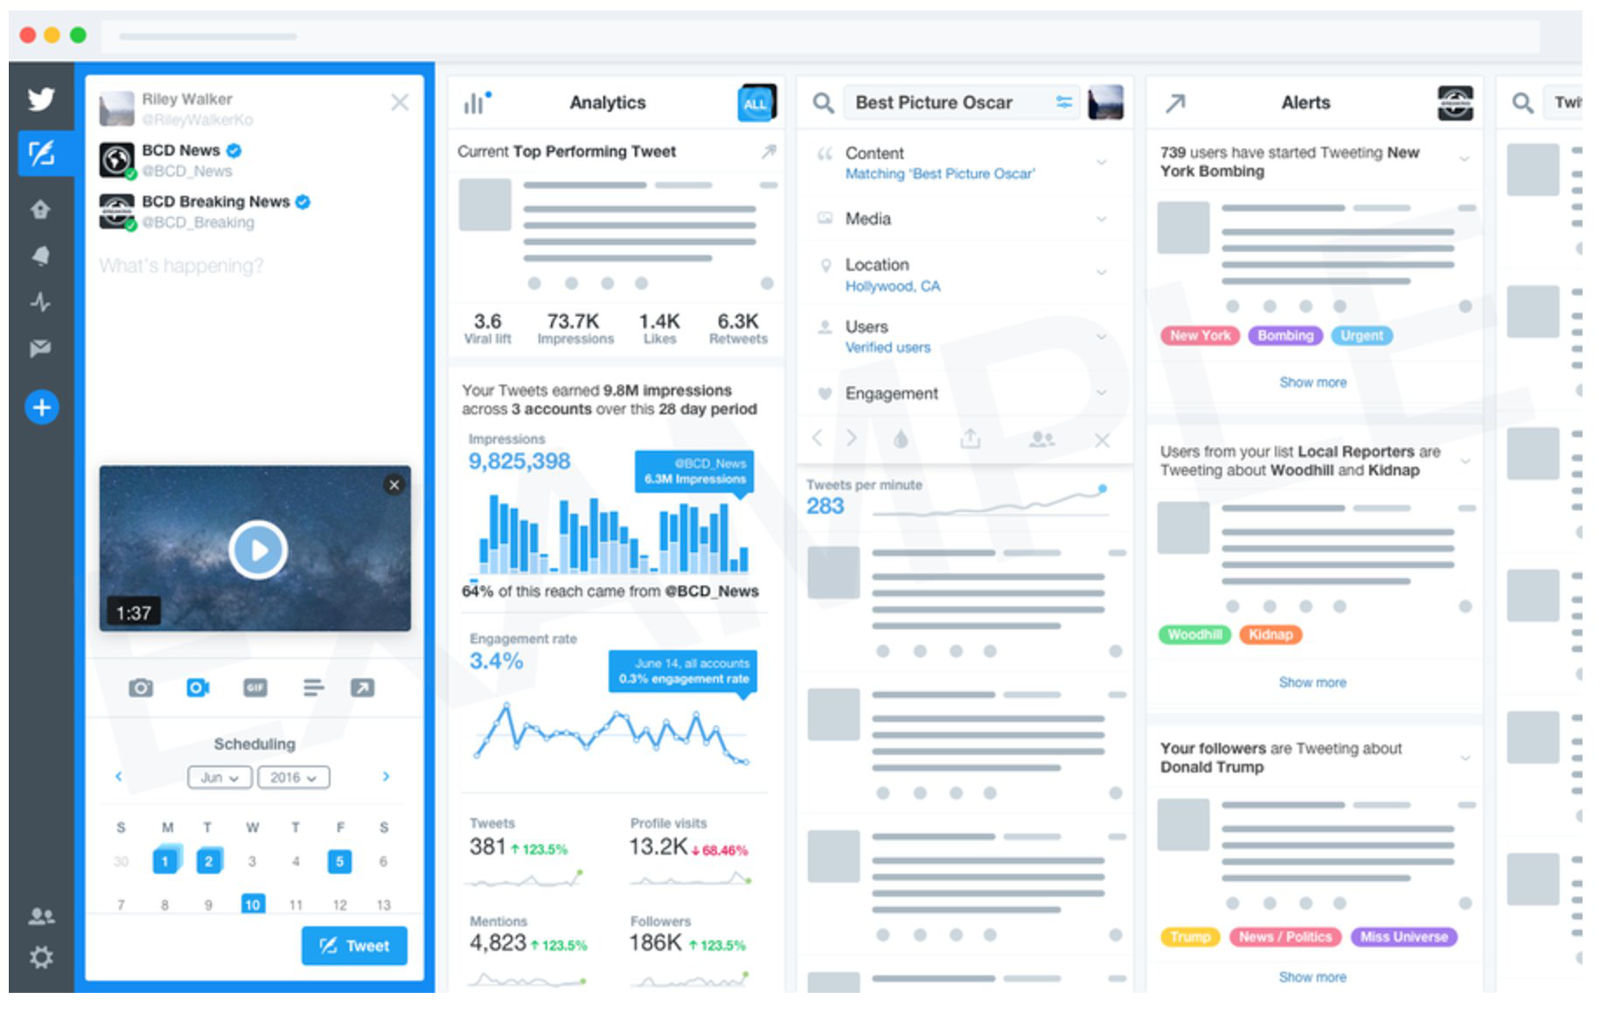 TweetDeck allows users to track engagement and schedule posts.